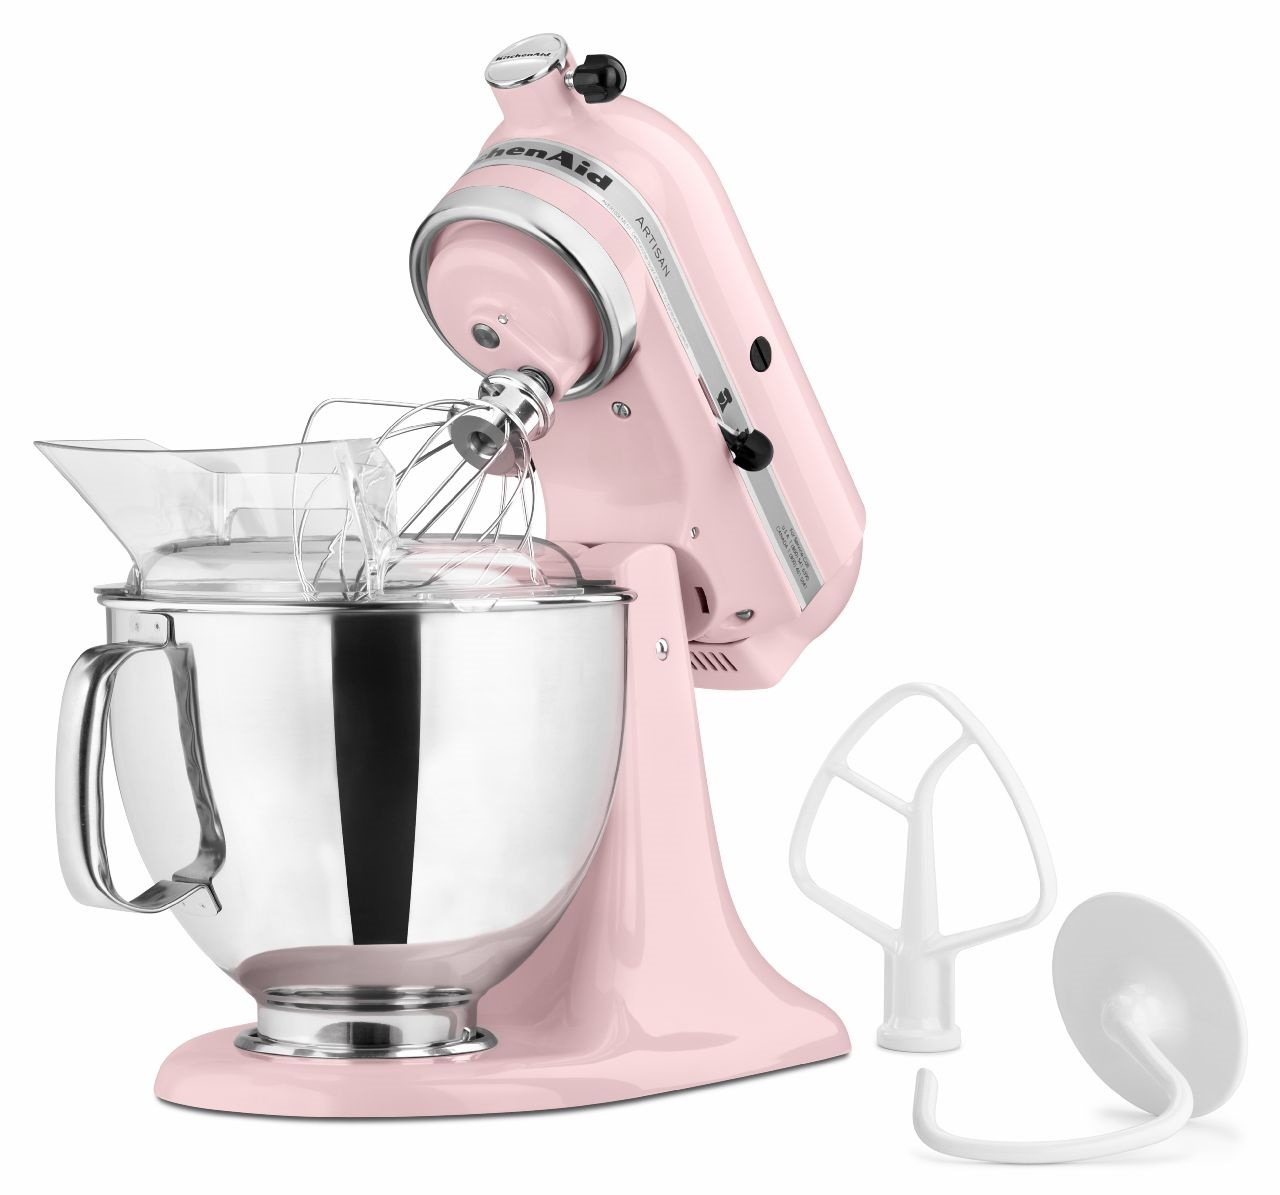 KitchenAid-Refurbished-Artisan-Series-5-Quart-Tilt-Head-Stand-Mixer-RRK150 thumbnail 71